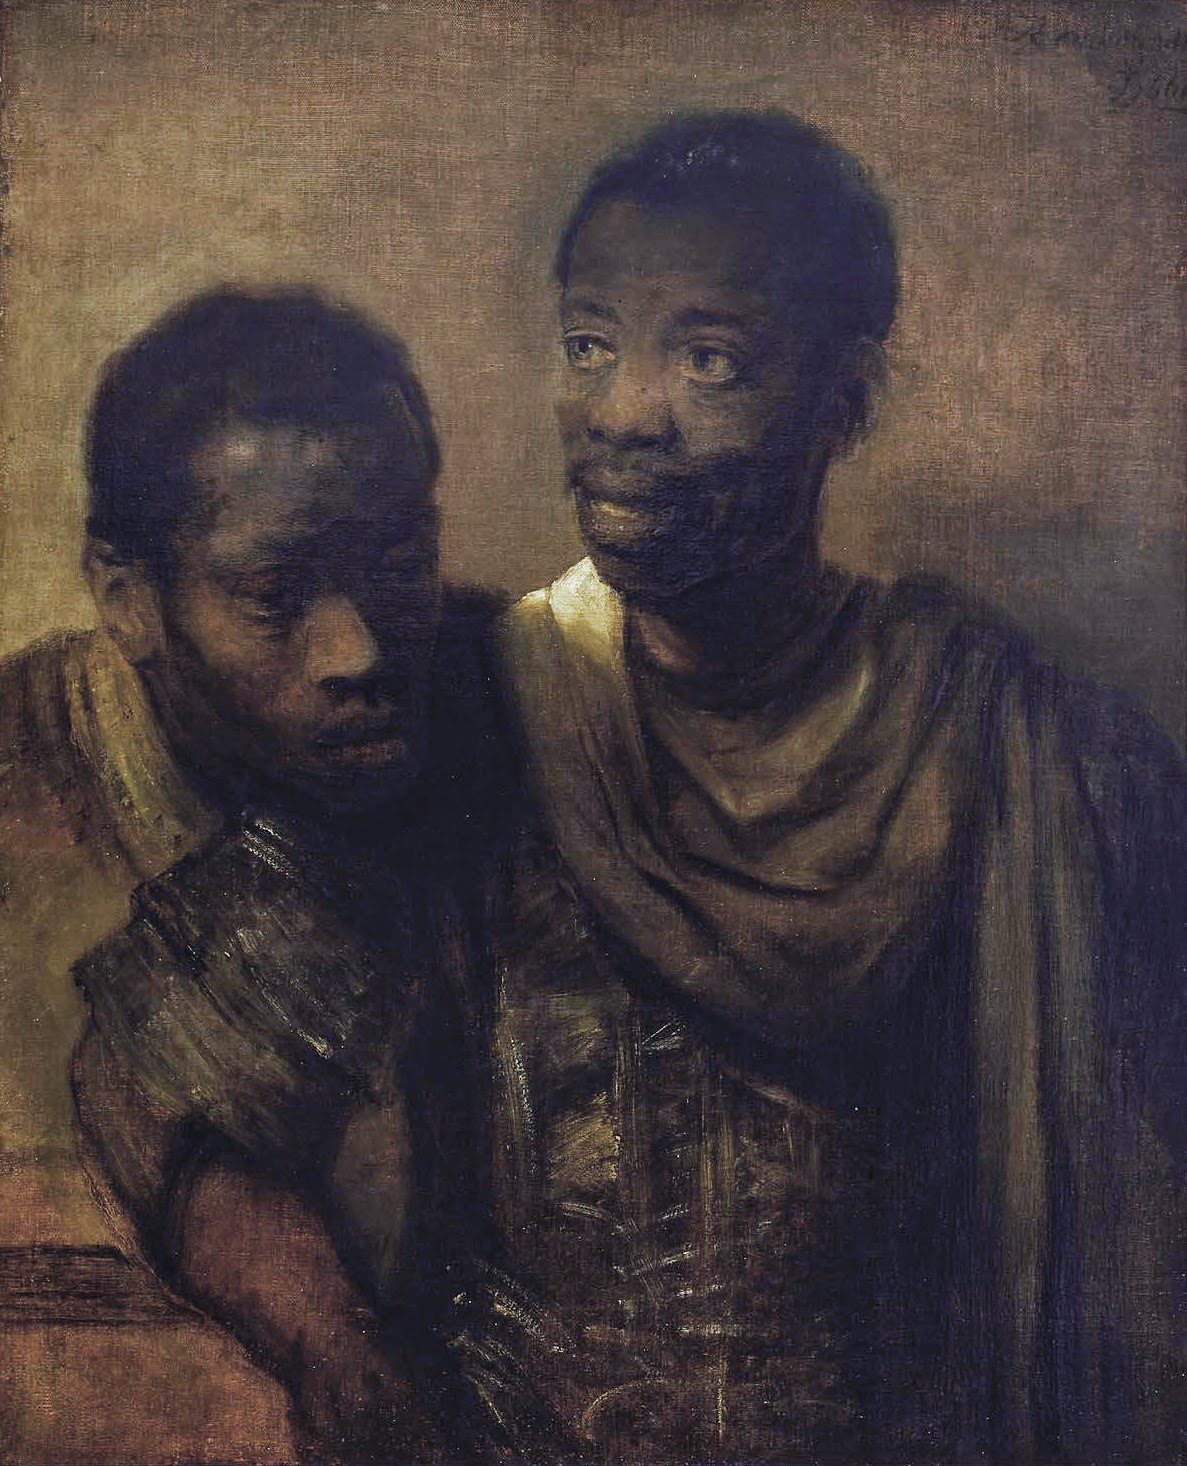 art artists rembrandt part  1661 two young africans oil on canvas 77 8 x 64 4 cm mauritshuis the hague